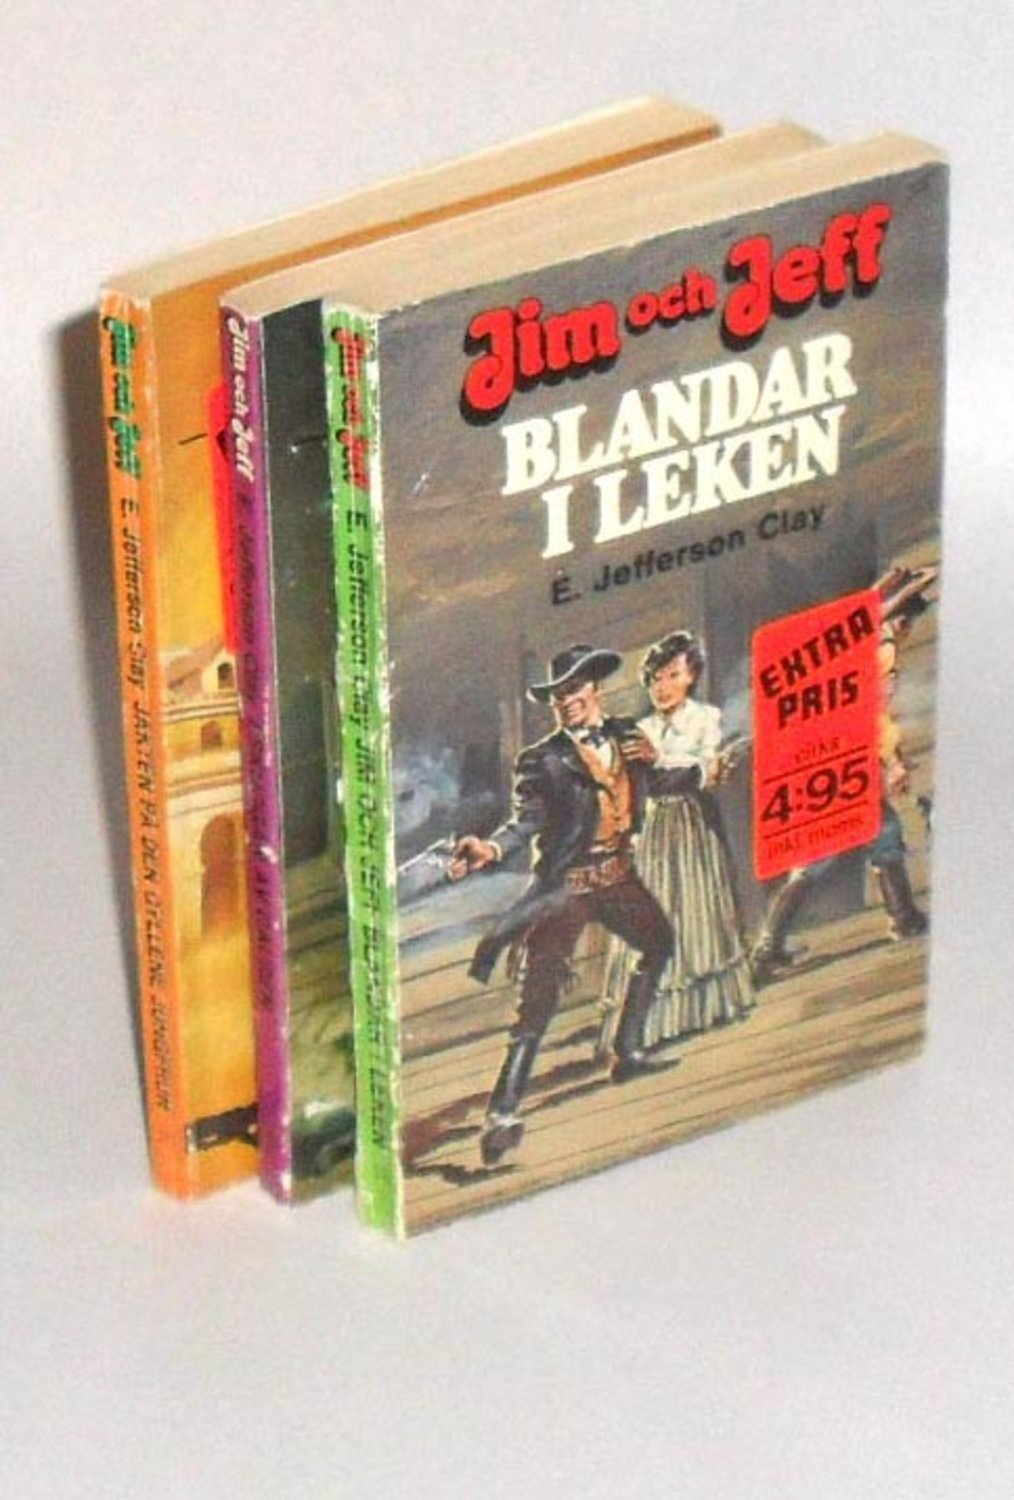 E. Jefferson Clay : 3 Böcker; Jim & Jeff; 31 Jakten på den